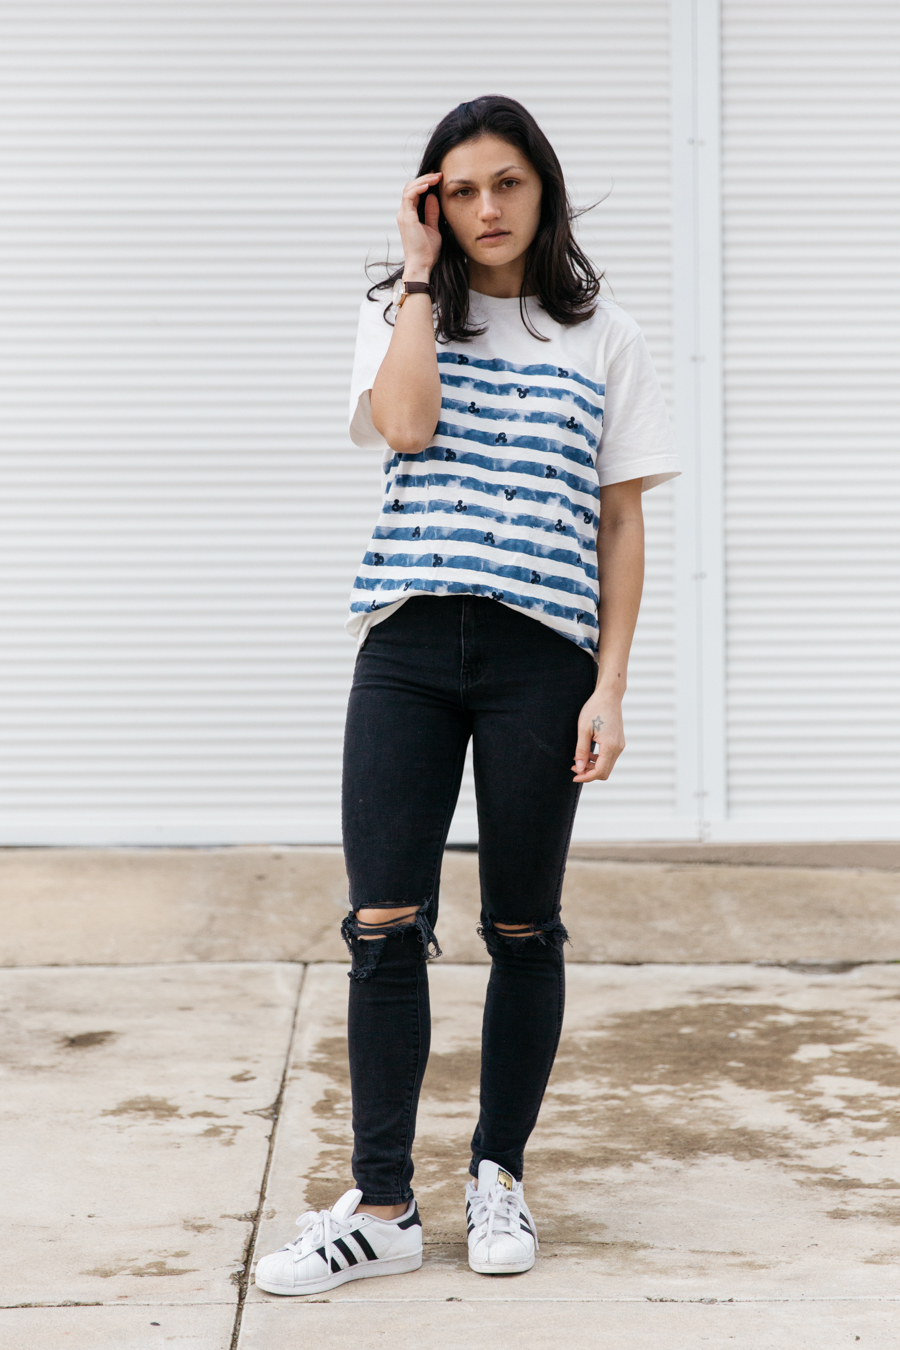 Neuw Denim ripped black jeans outfit.